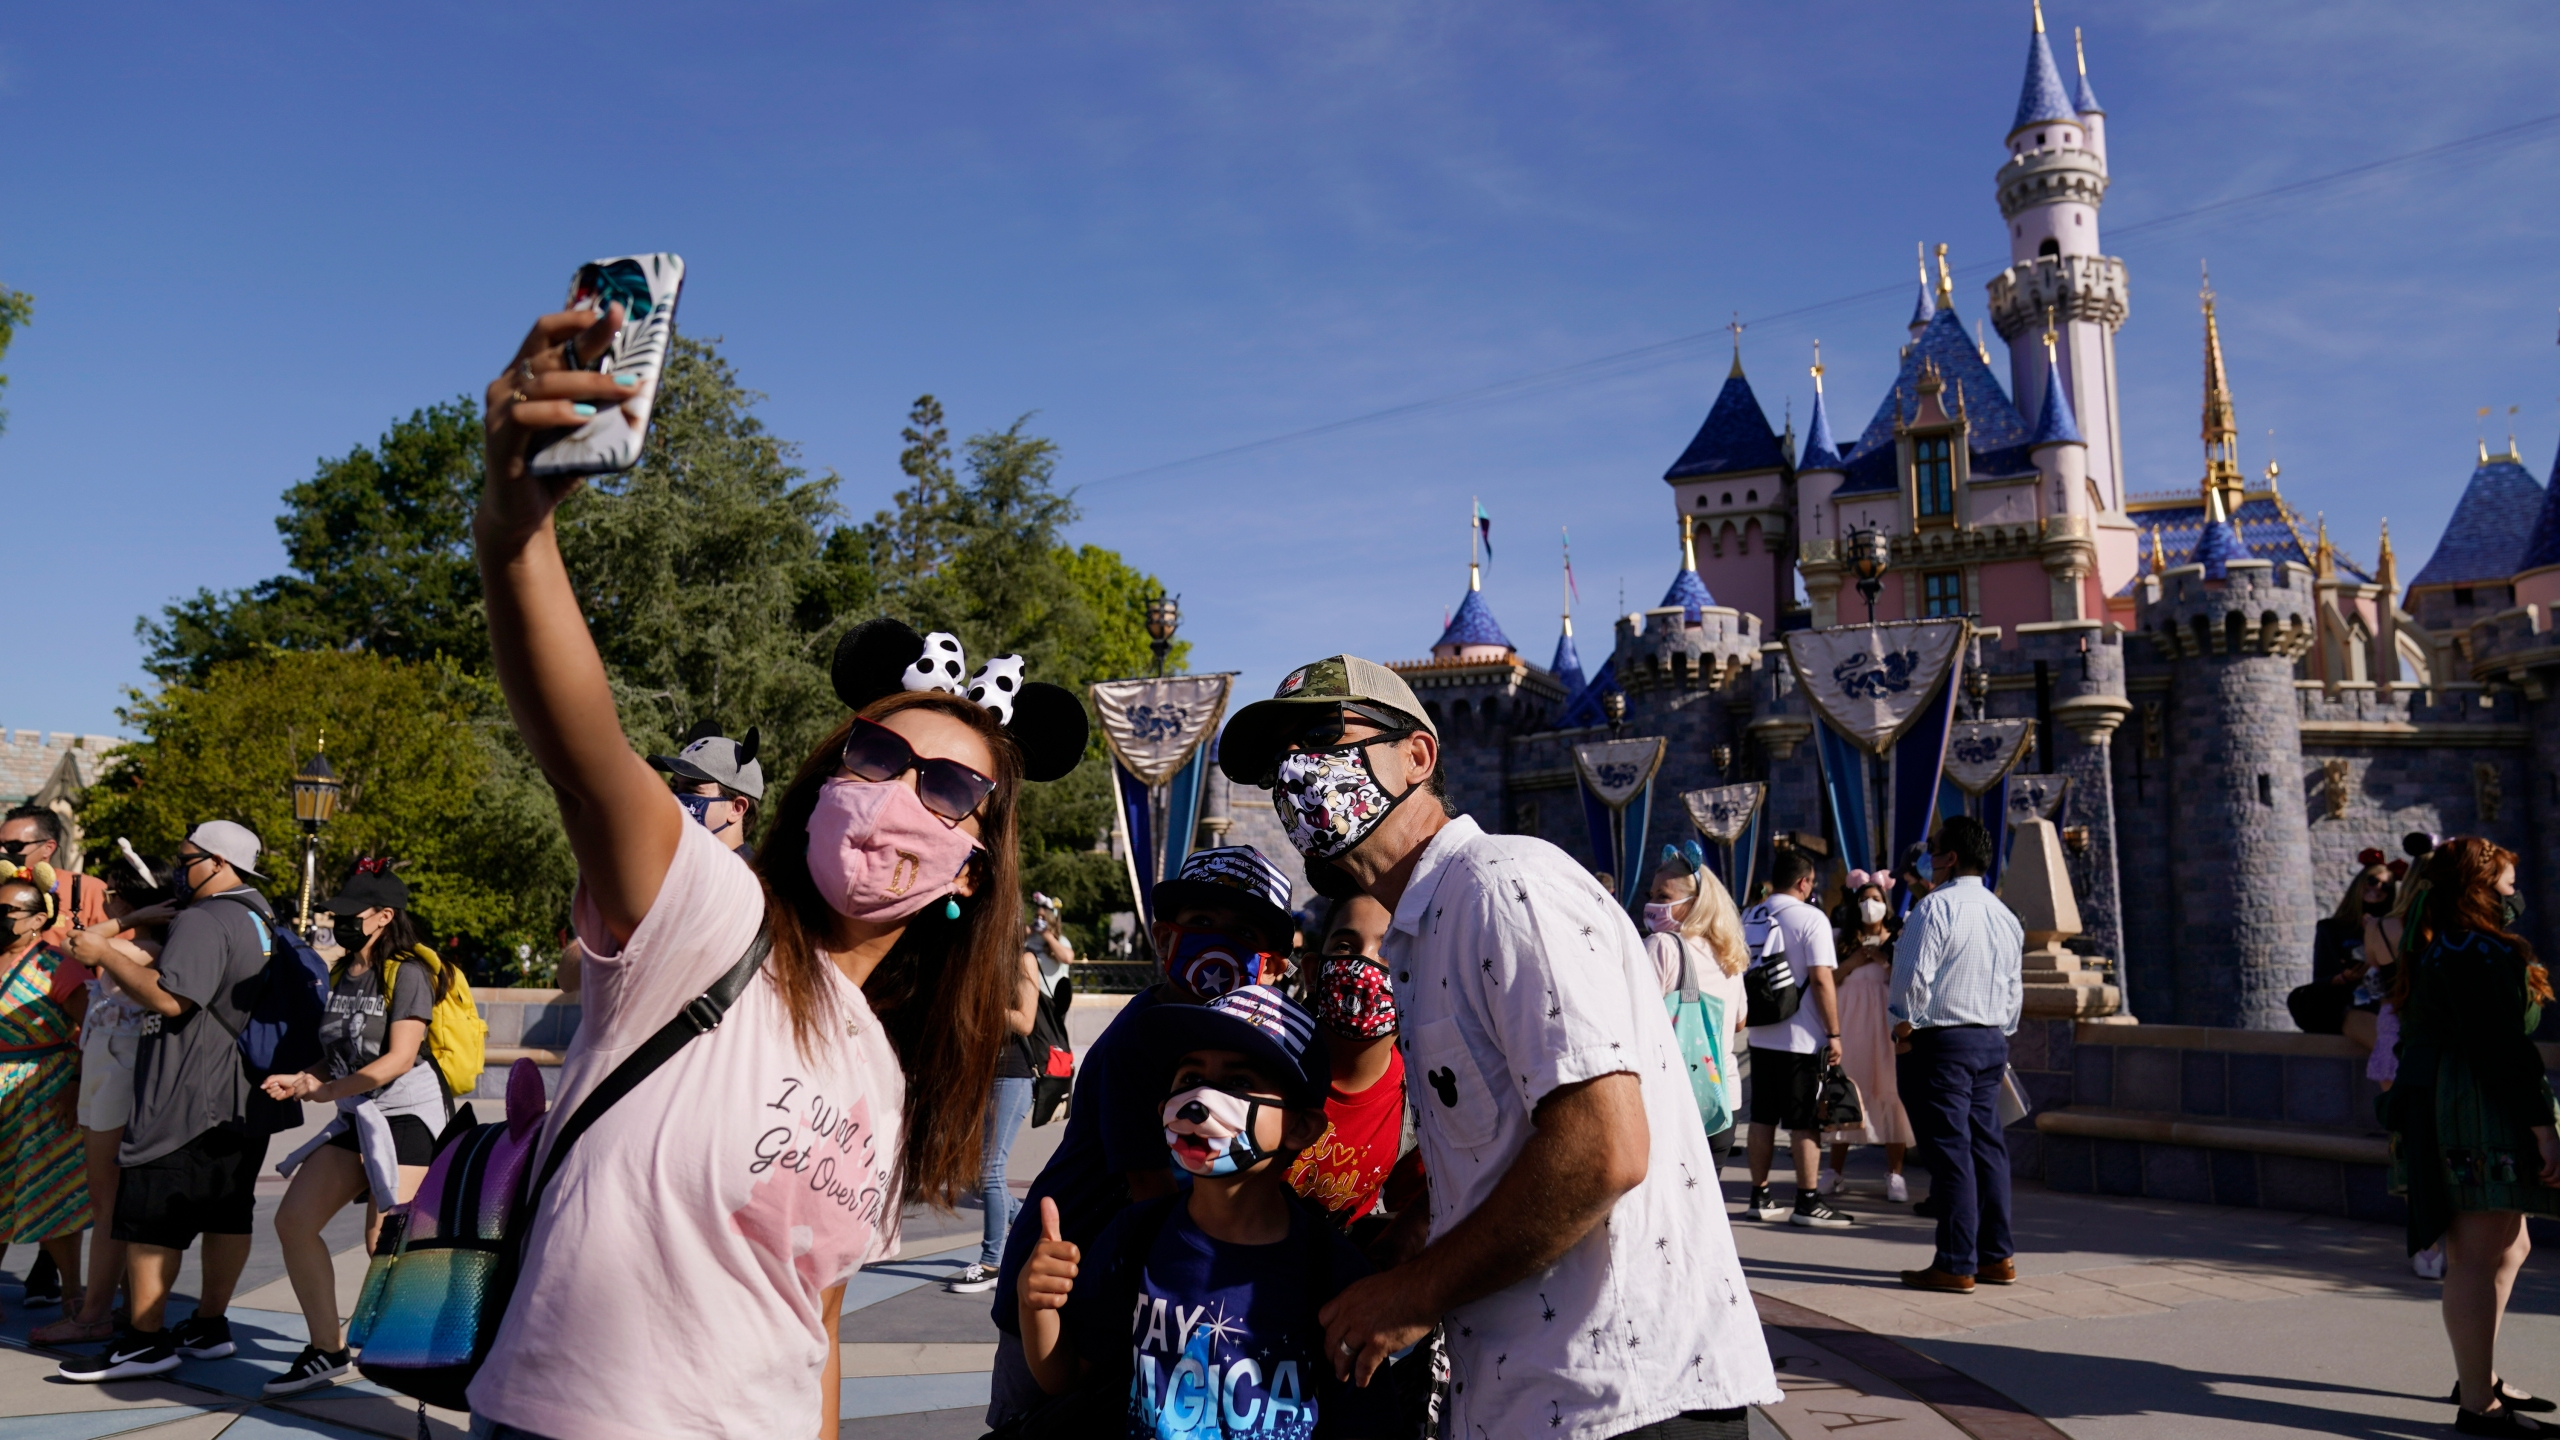 A family takes a photo in front of Sleeping Beauty's Castle at Disneyland in Anaheim, Calif., Friday, April 30, 2021. The iconic theme park in Southern California that was closed under the state's strict virus rules swung open its gates Friday and some visitors came in cheering and screaming with happiness. (AP Photo/Jae Hong)